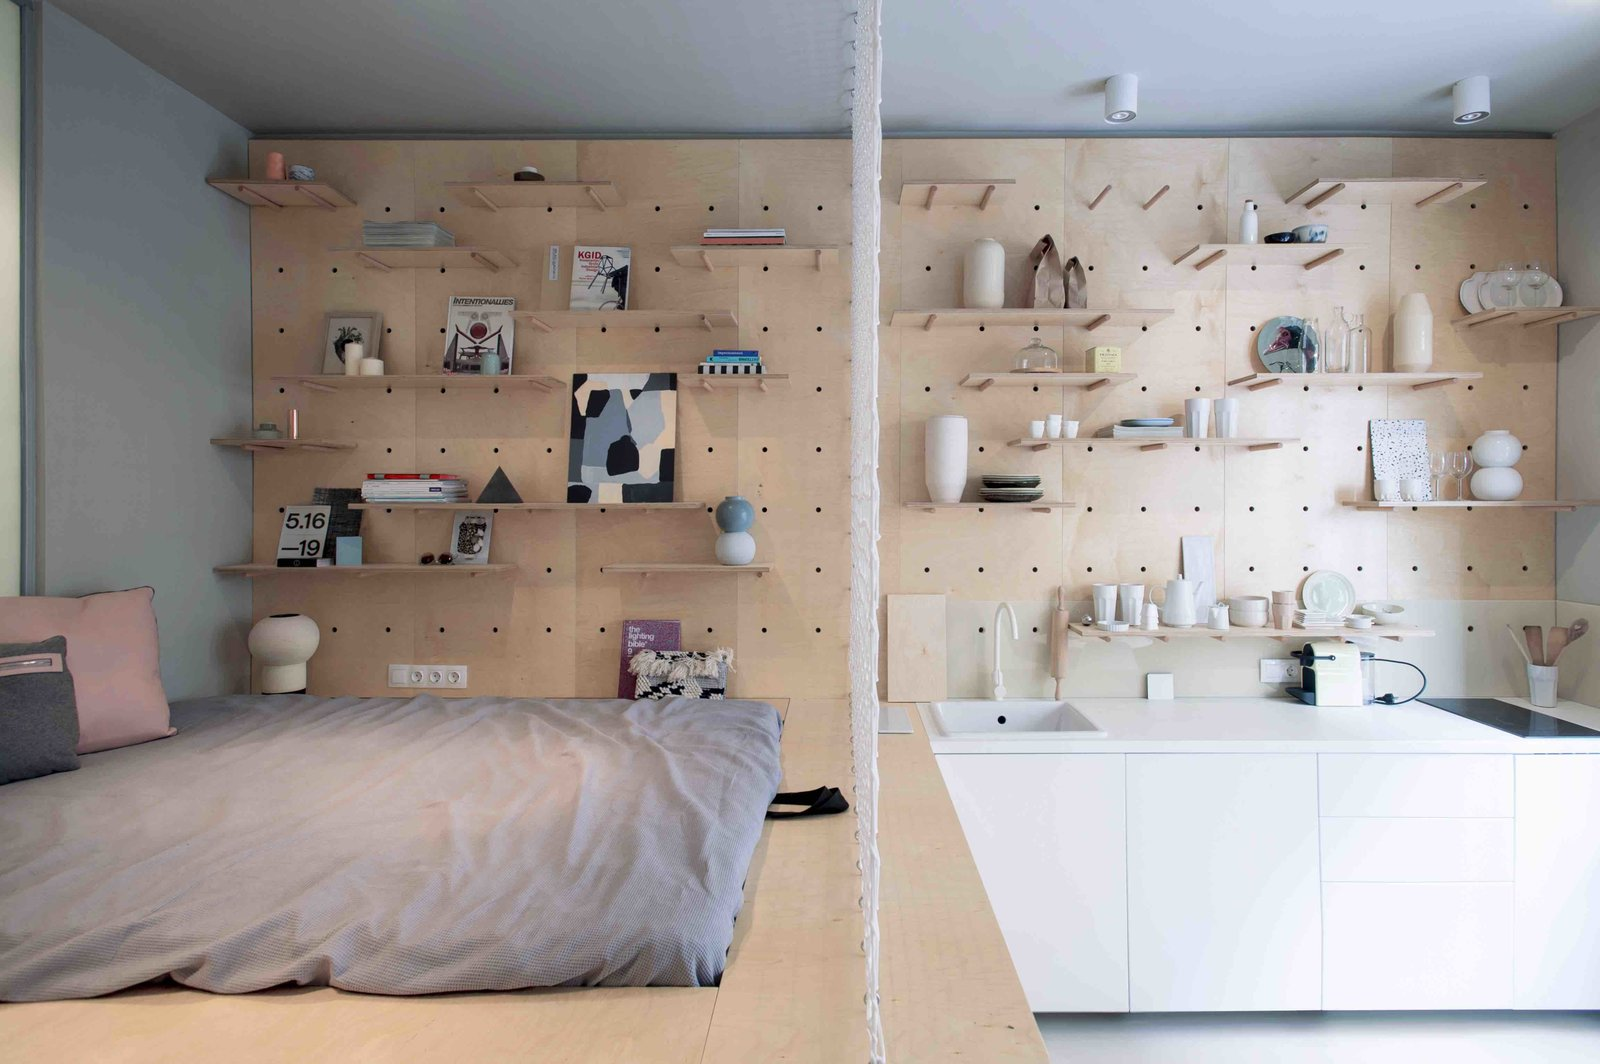 Photo 2 of 11 in 3 Smart Storage Systems Maximize Space in a Tiny ...